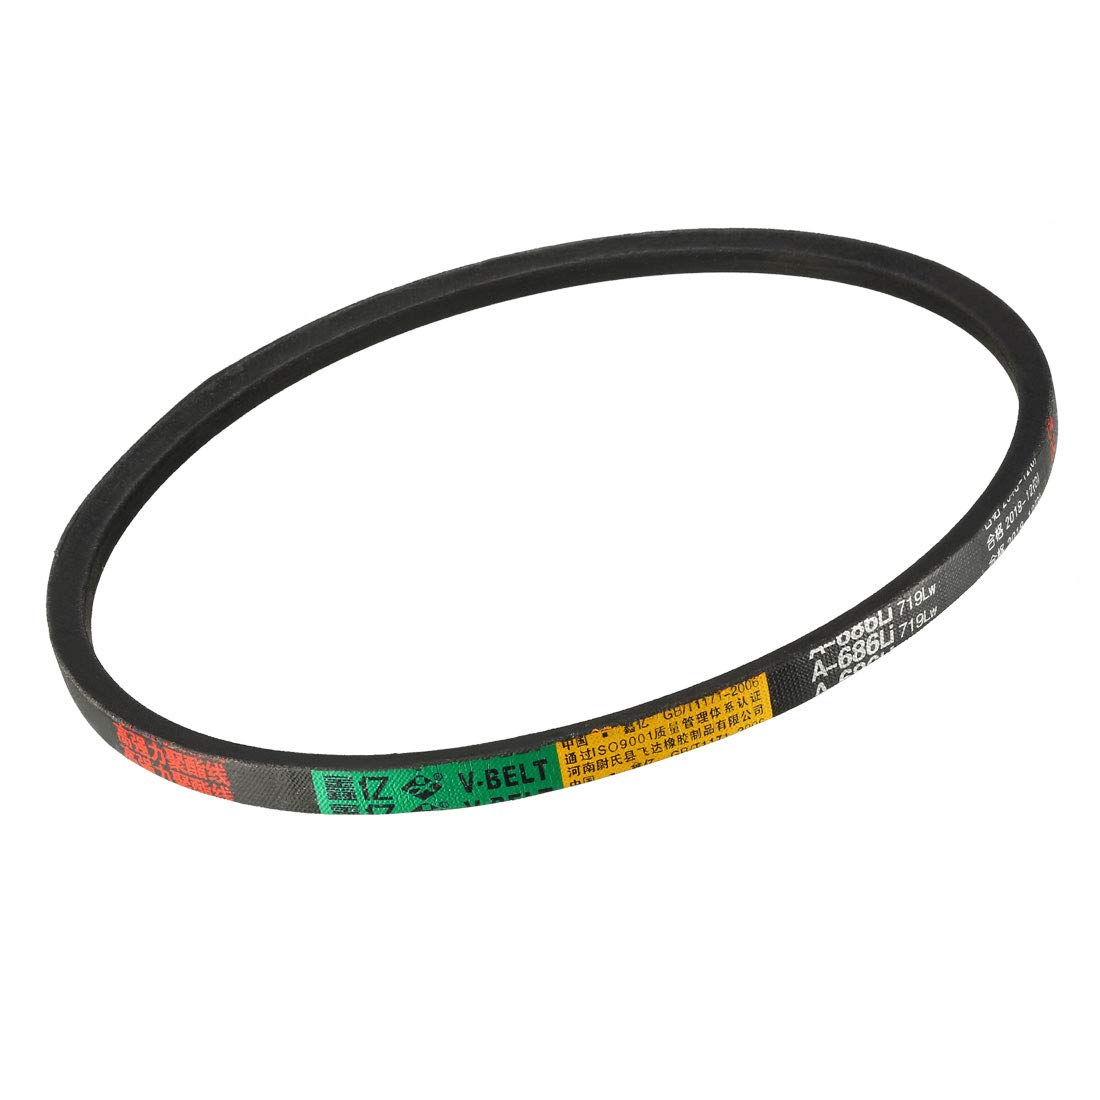 sourcing map A-980//A38 Drive V-Belt Inner Girth 38-inch Industrial Power Rubber Transmission Belt